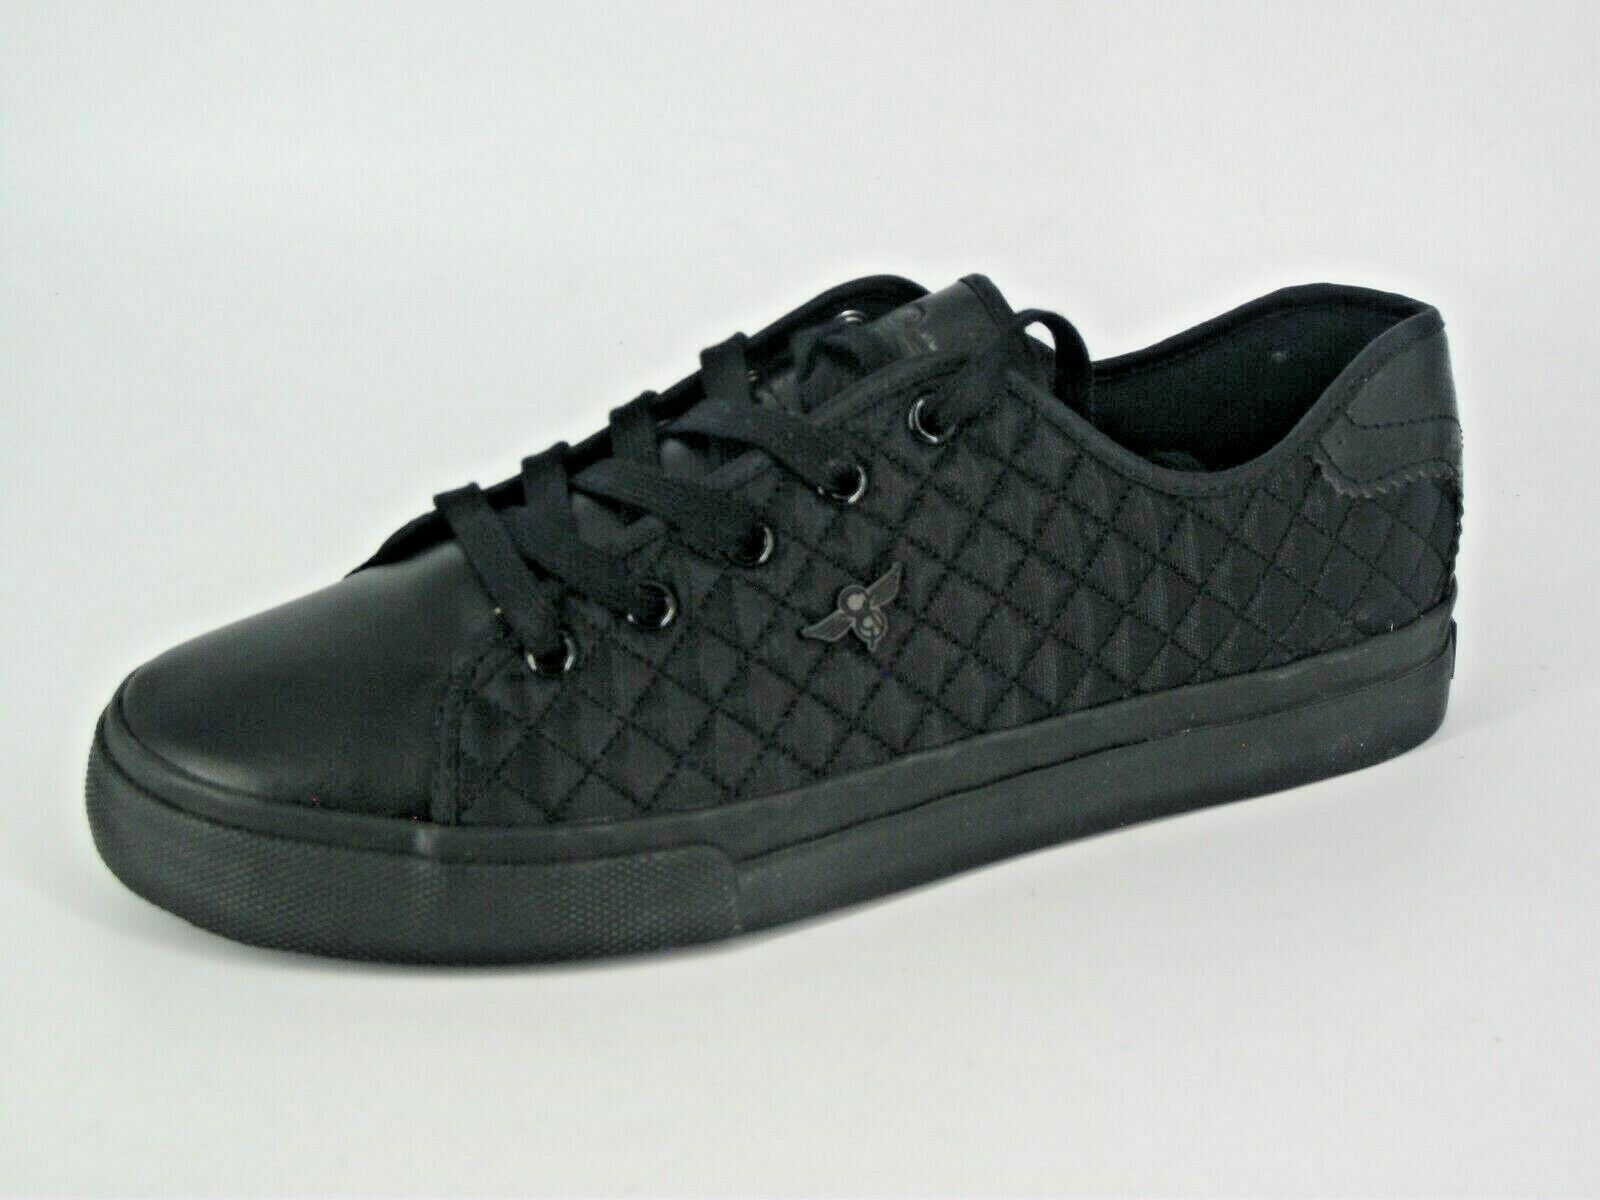 CREATIVE RECREATION KAPLAN QUILT TRAINERS BLACK UK 8 EU 42 NH12 94